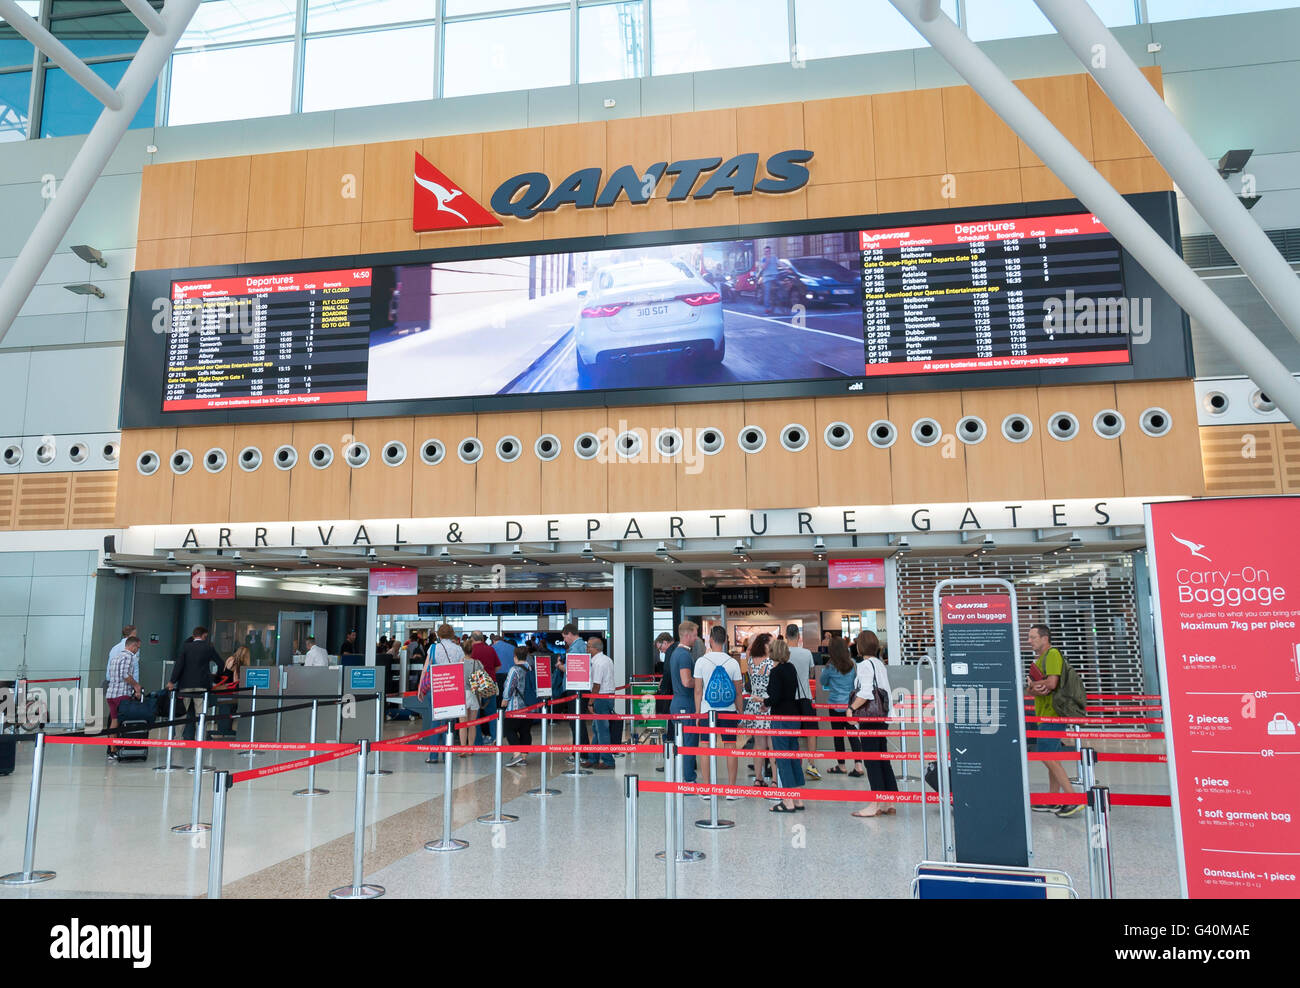 Arrival & Departure Gates at at Sydney Kingsford Smith Airport, Mascot, Sydney, New South Wales, Australia - Stock Image